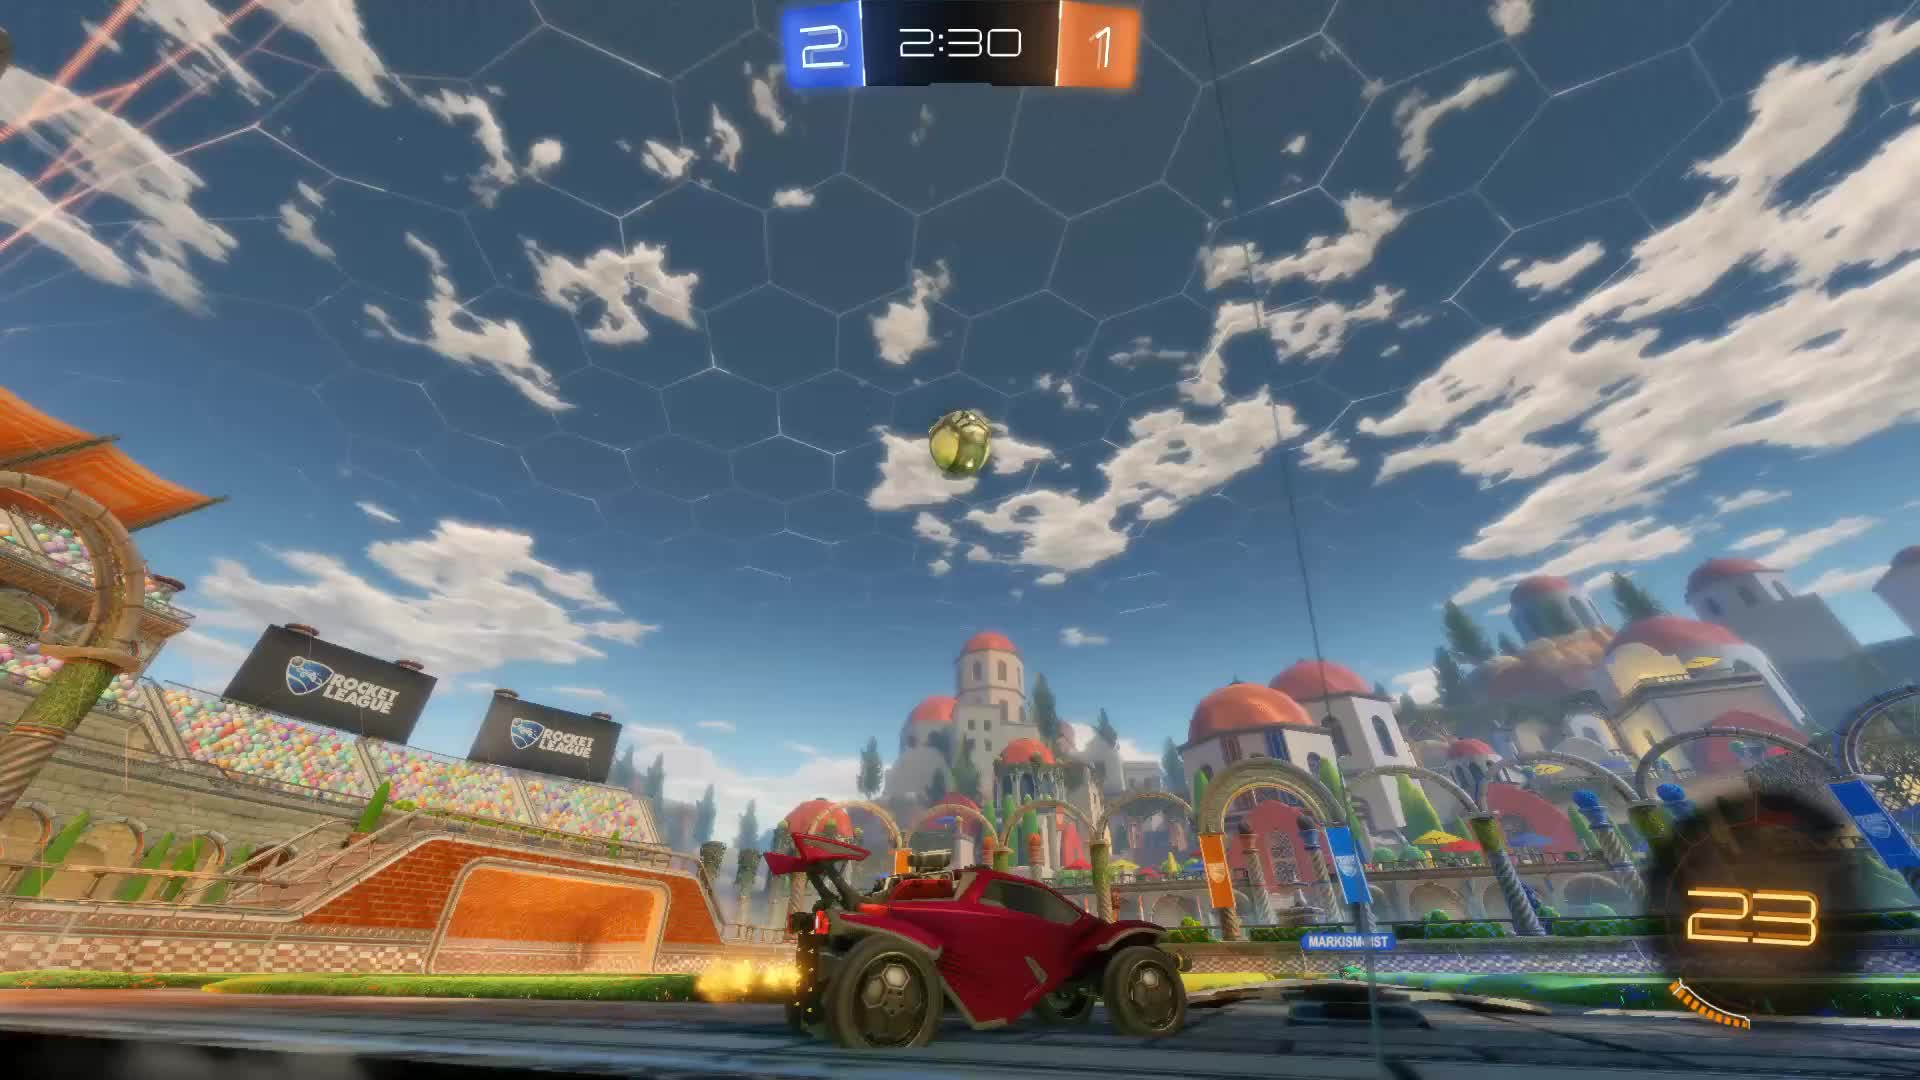 Gif Your Game, GifYourGame, Goal, Rocket League, RocketLeague, legoguney, Goal 4: legoguney GIFs